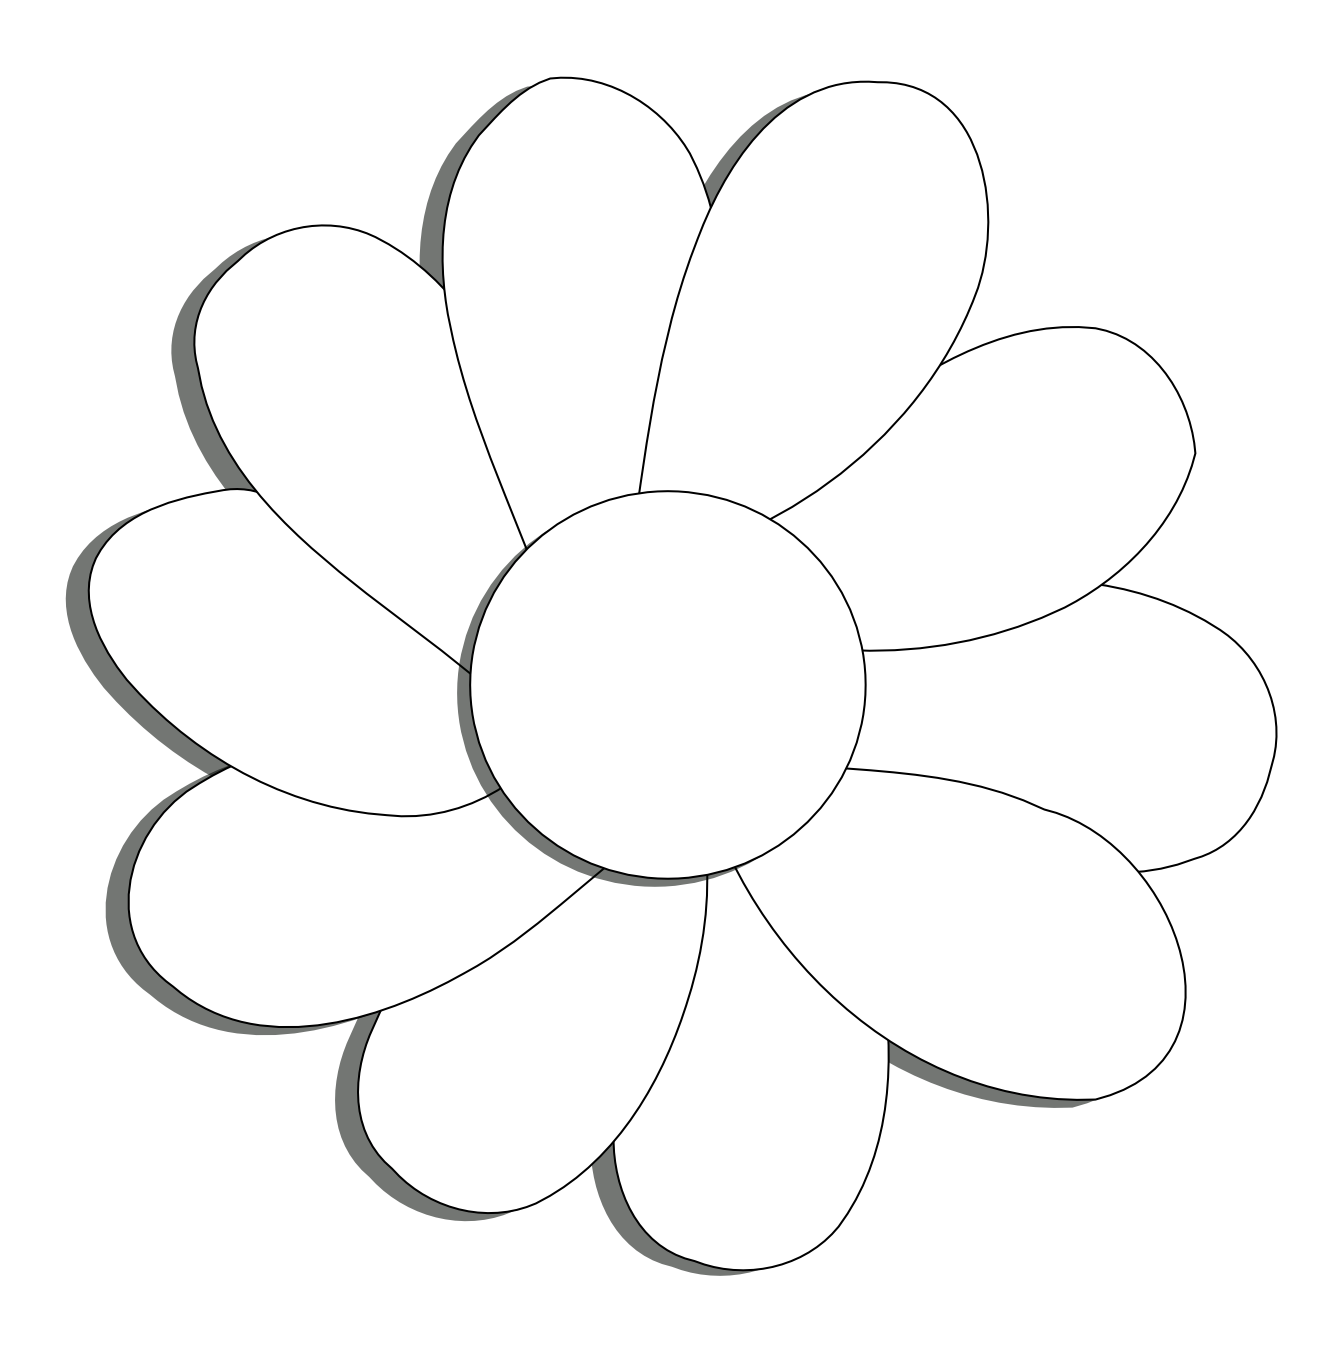 Line Art Flowers Vector : Daisy flower black white line art drawing scalable